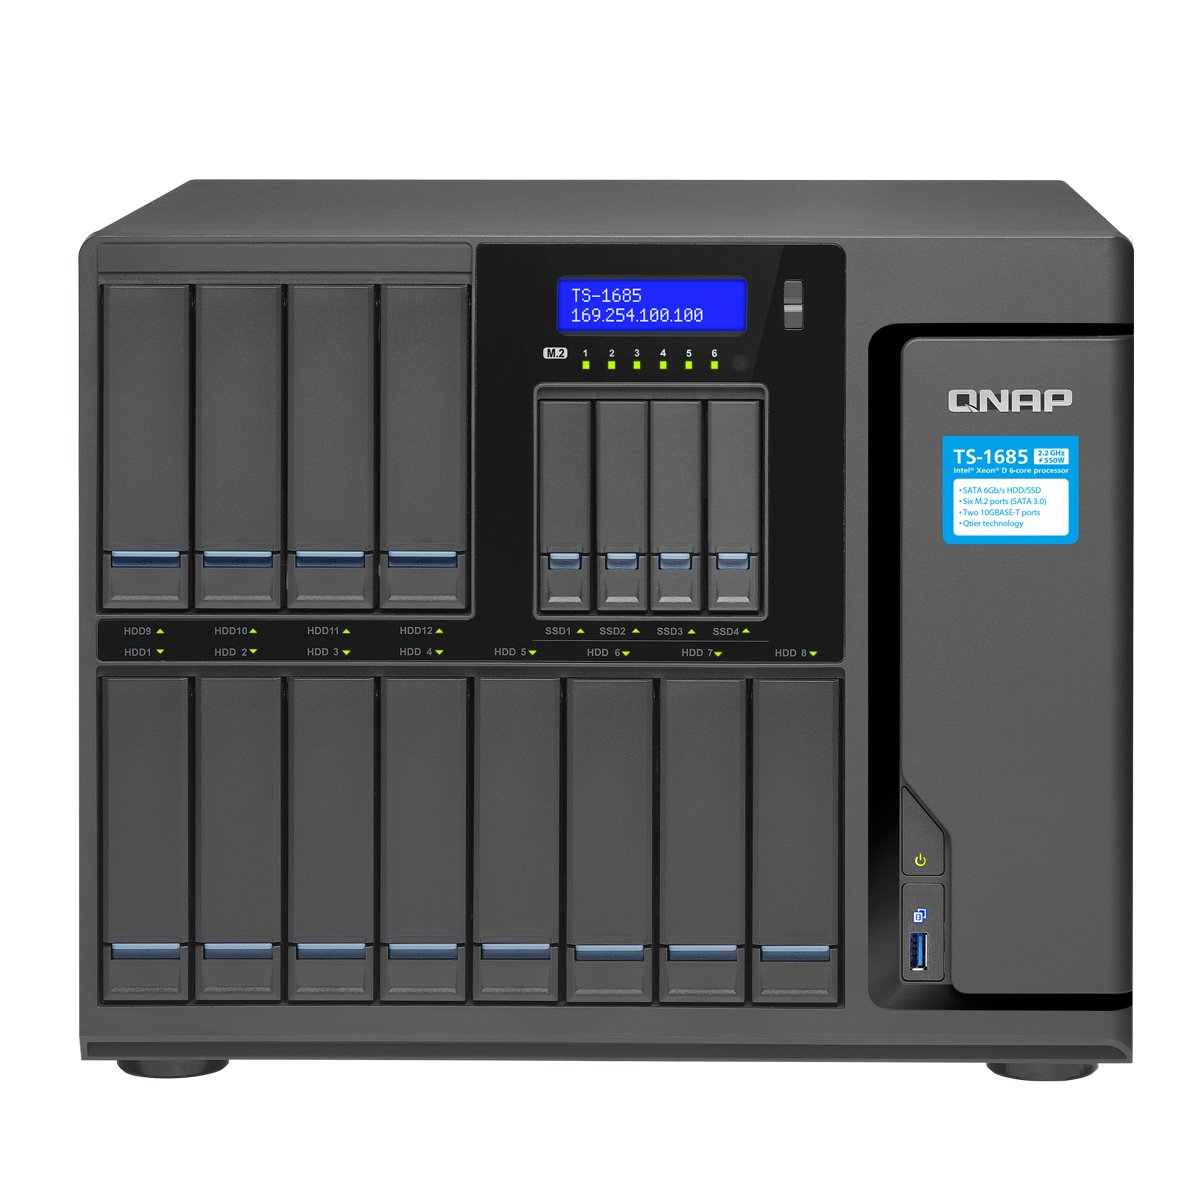 Qnap TS-1685-D1521-32G-550W-US 12 Bay High-Capacity power supply by QNAP